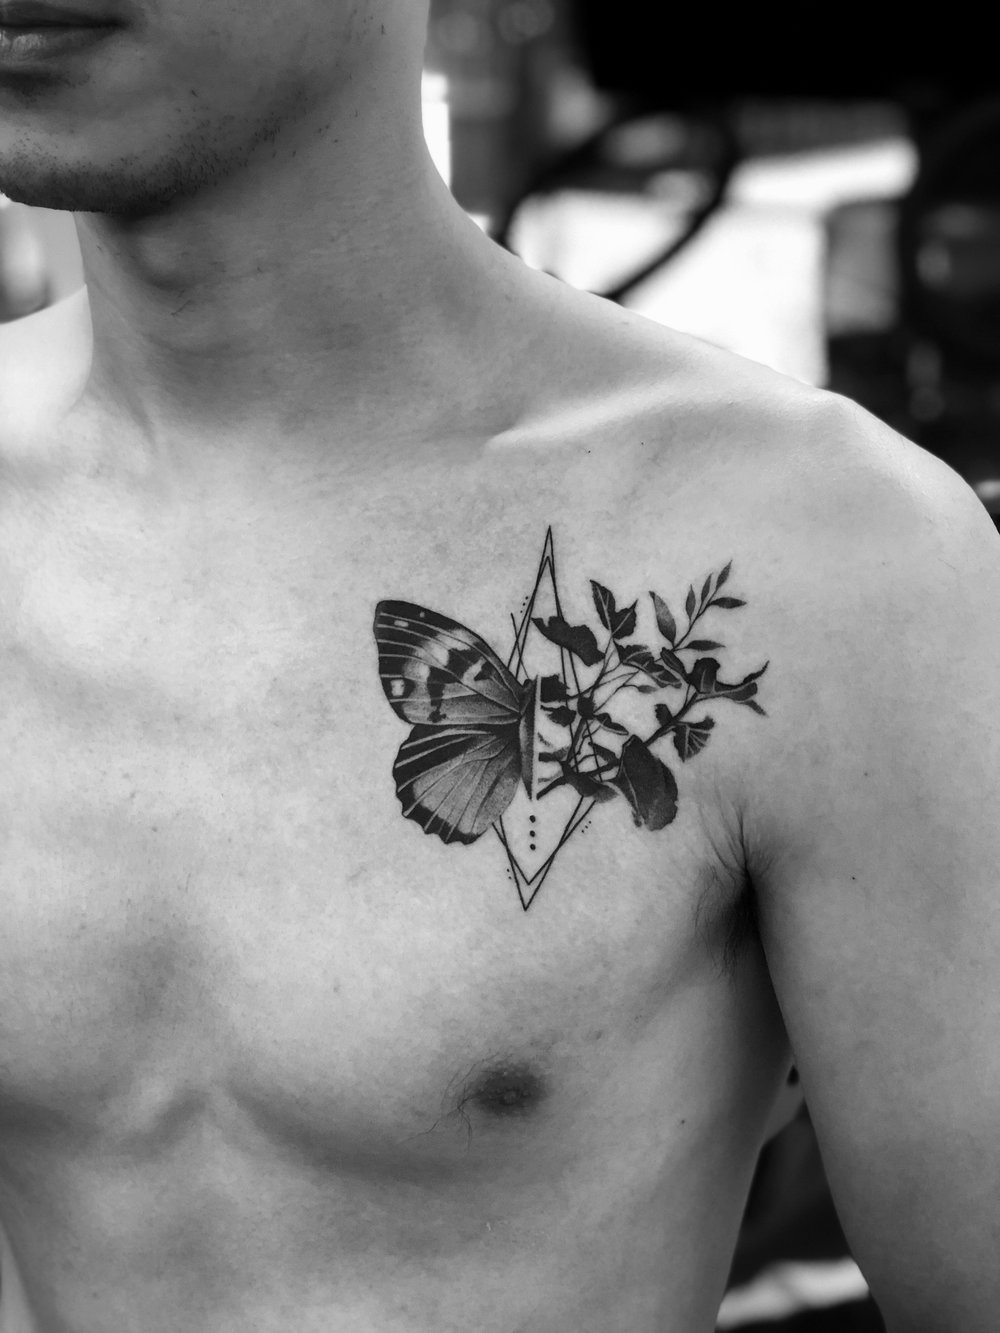 2018-fridays-tattoo-hong-kong-felix-butterfly-geometry-illustration.jpg